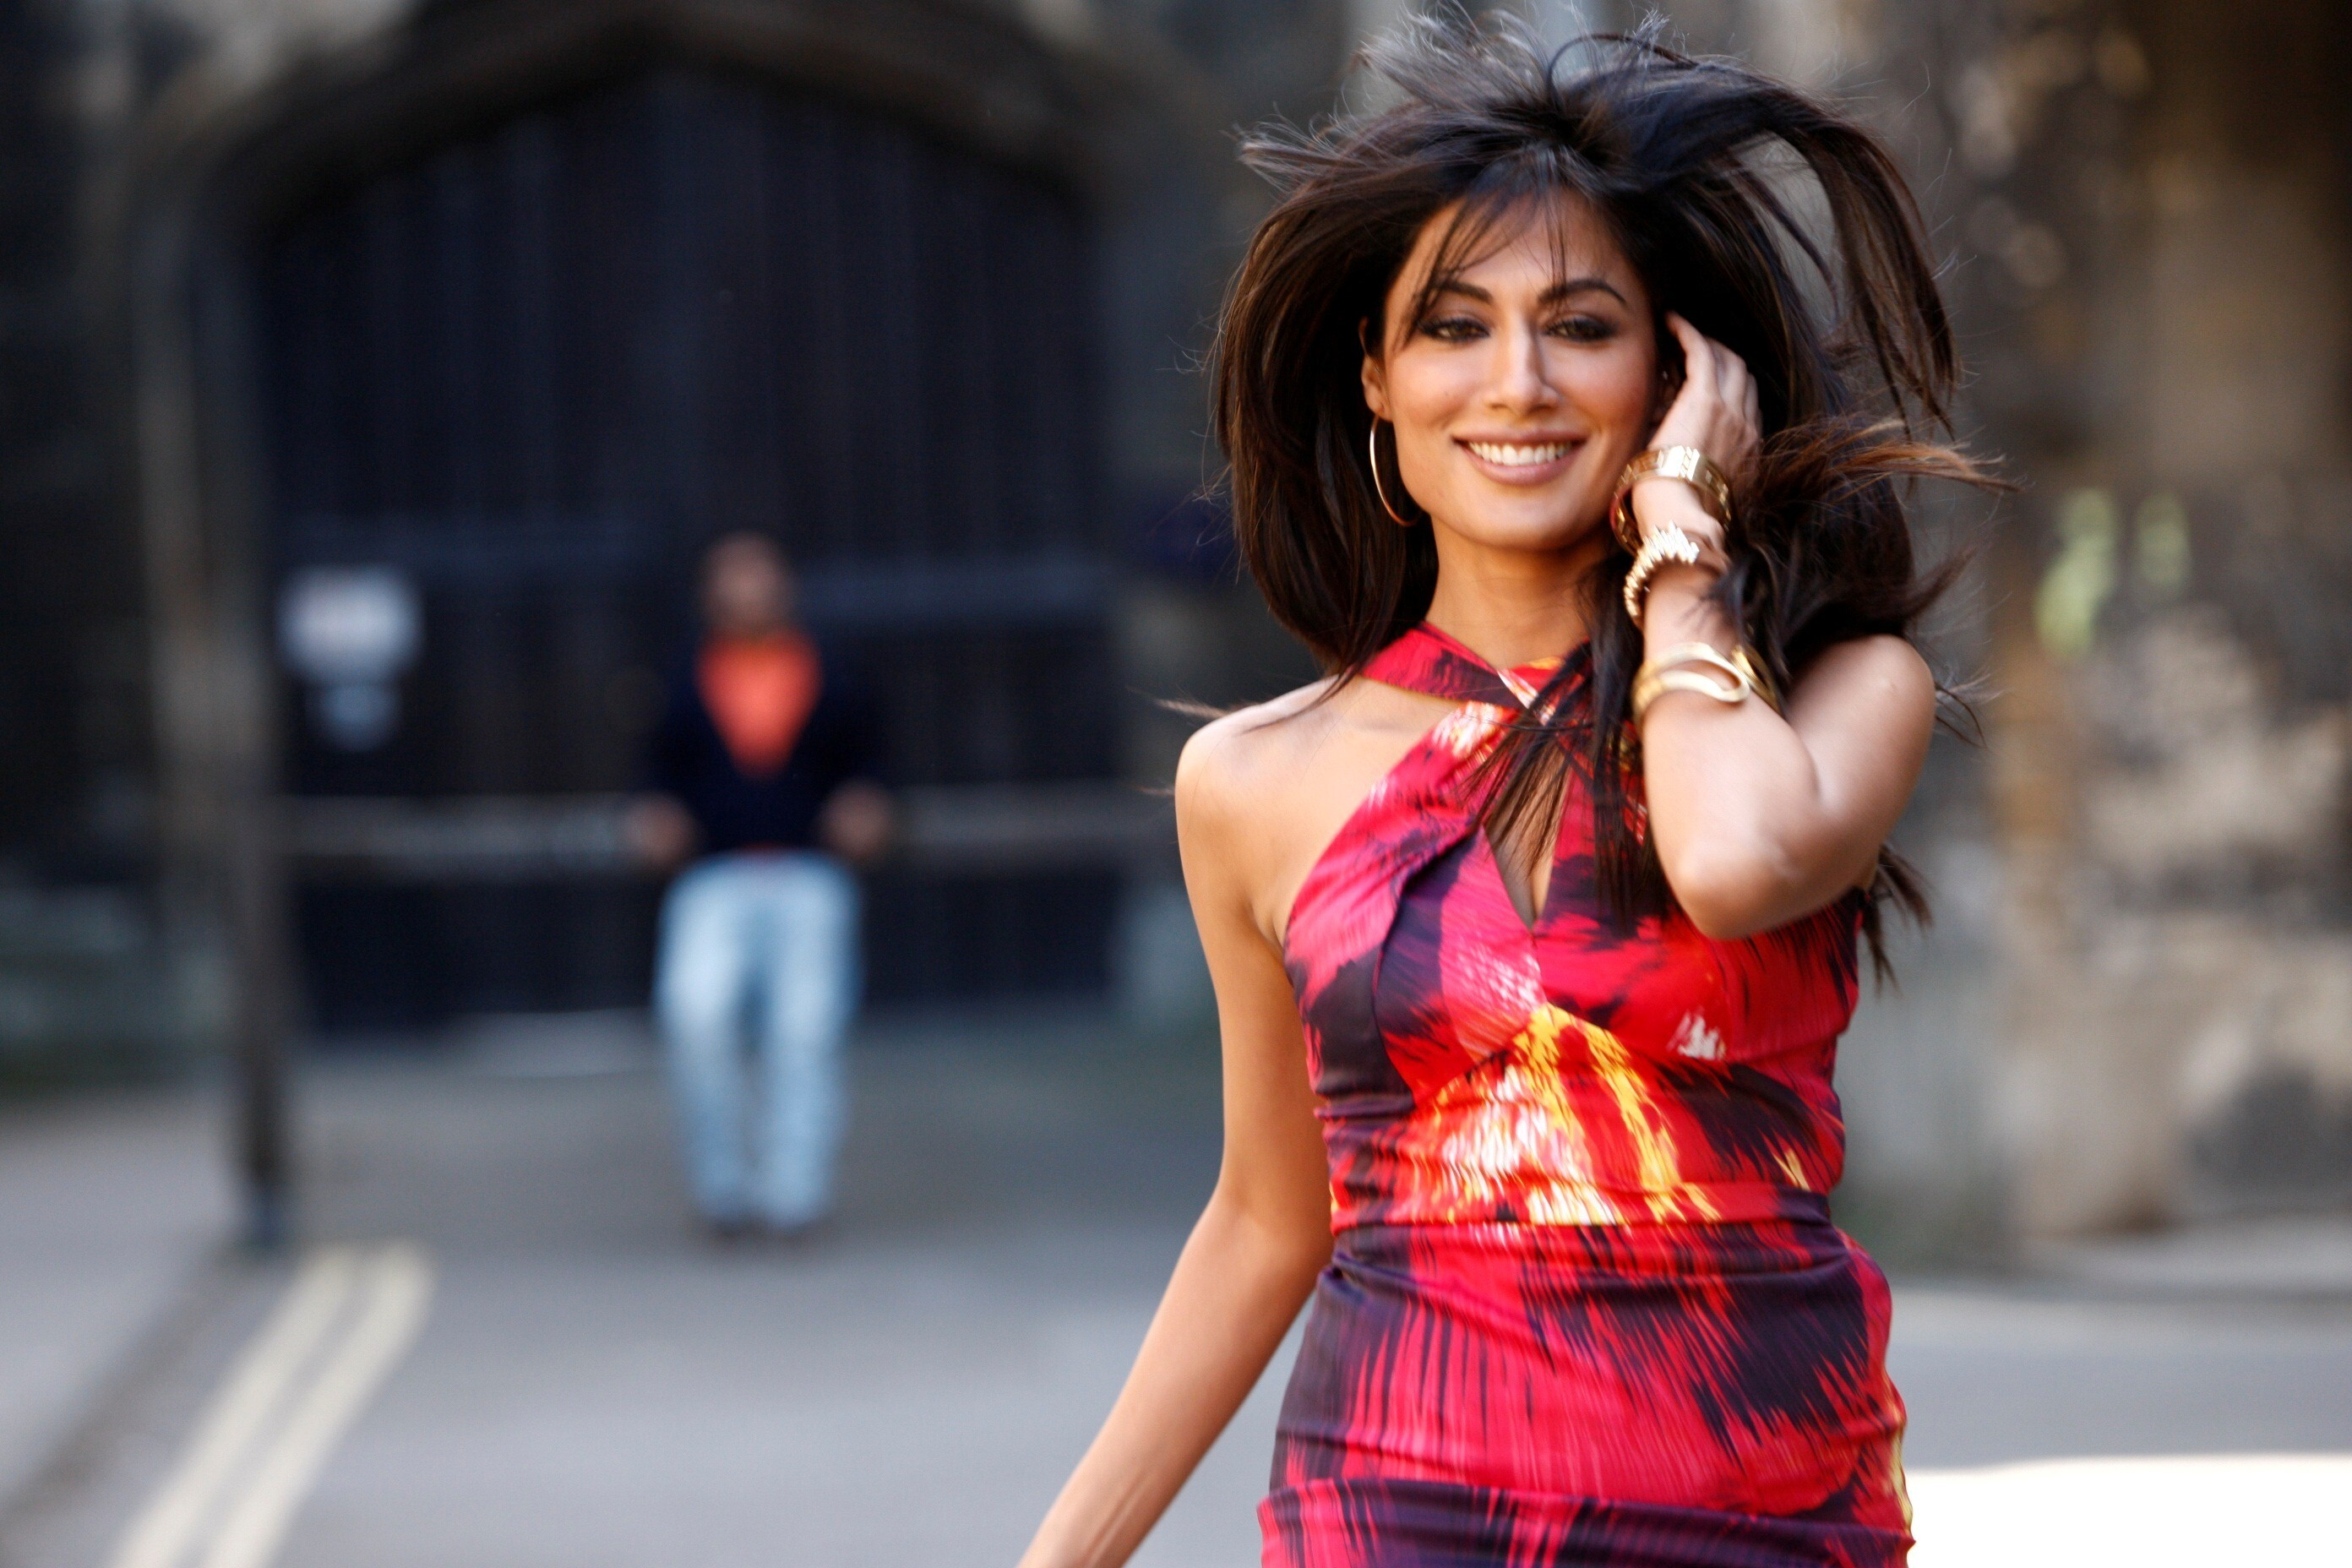 chitrangada singh in crazy style | hd wallpapers